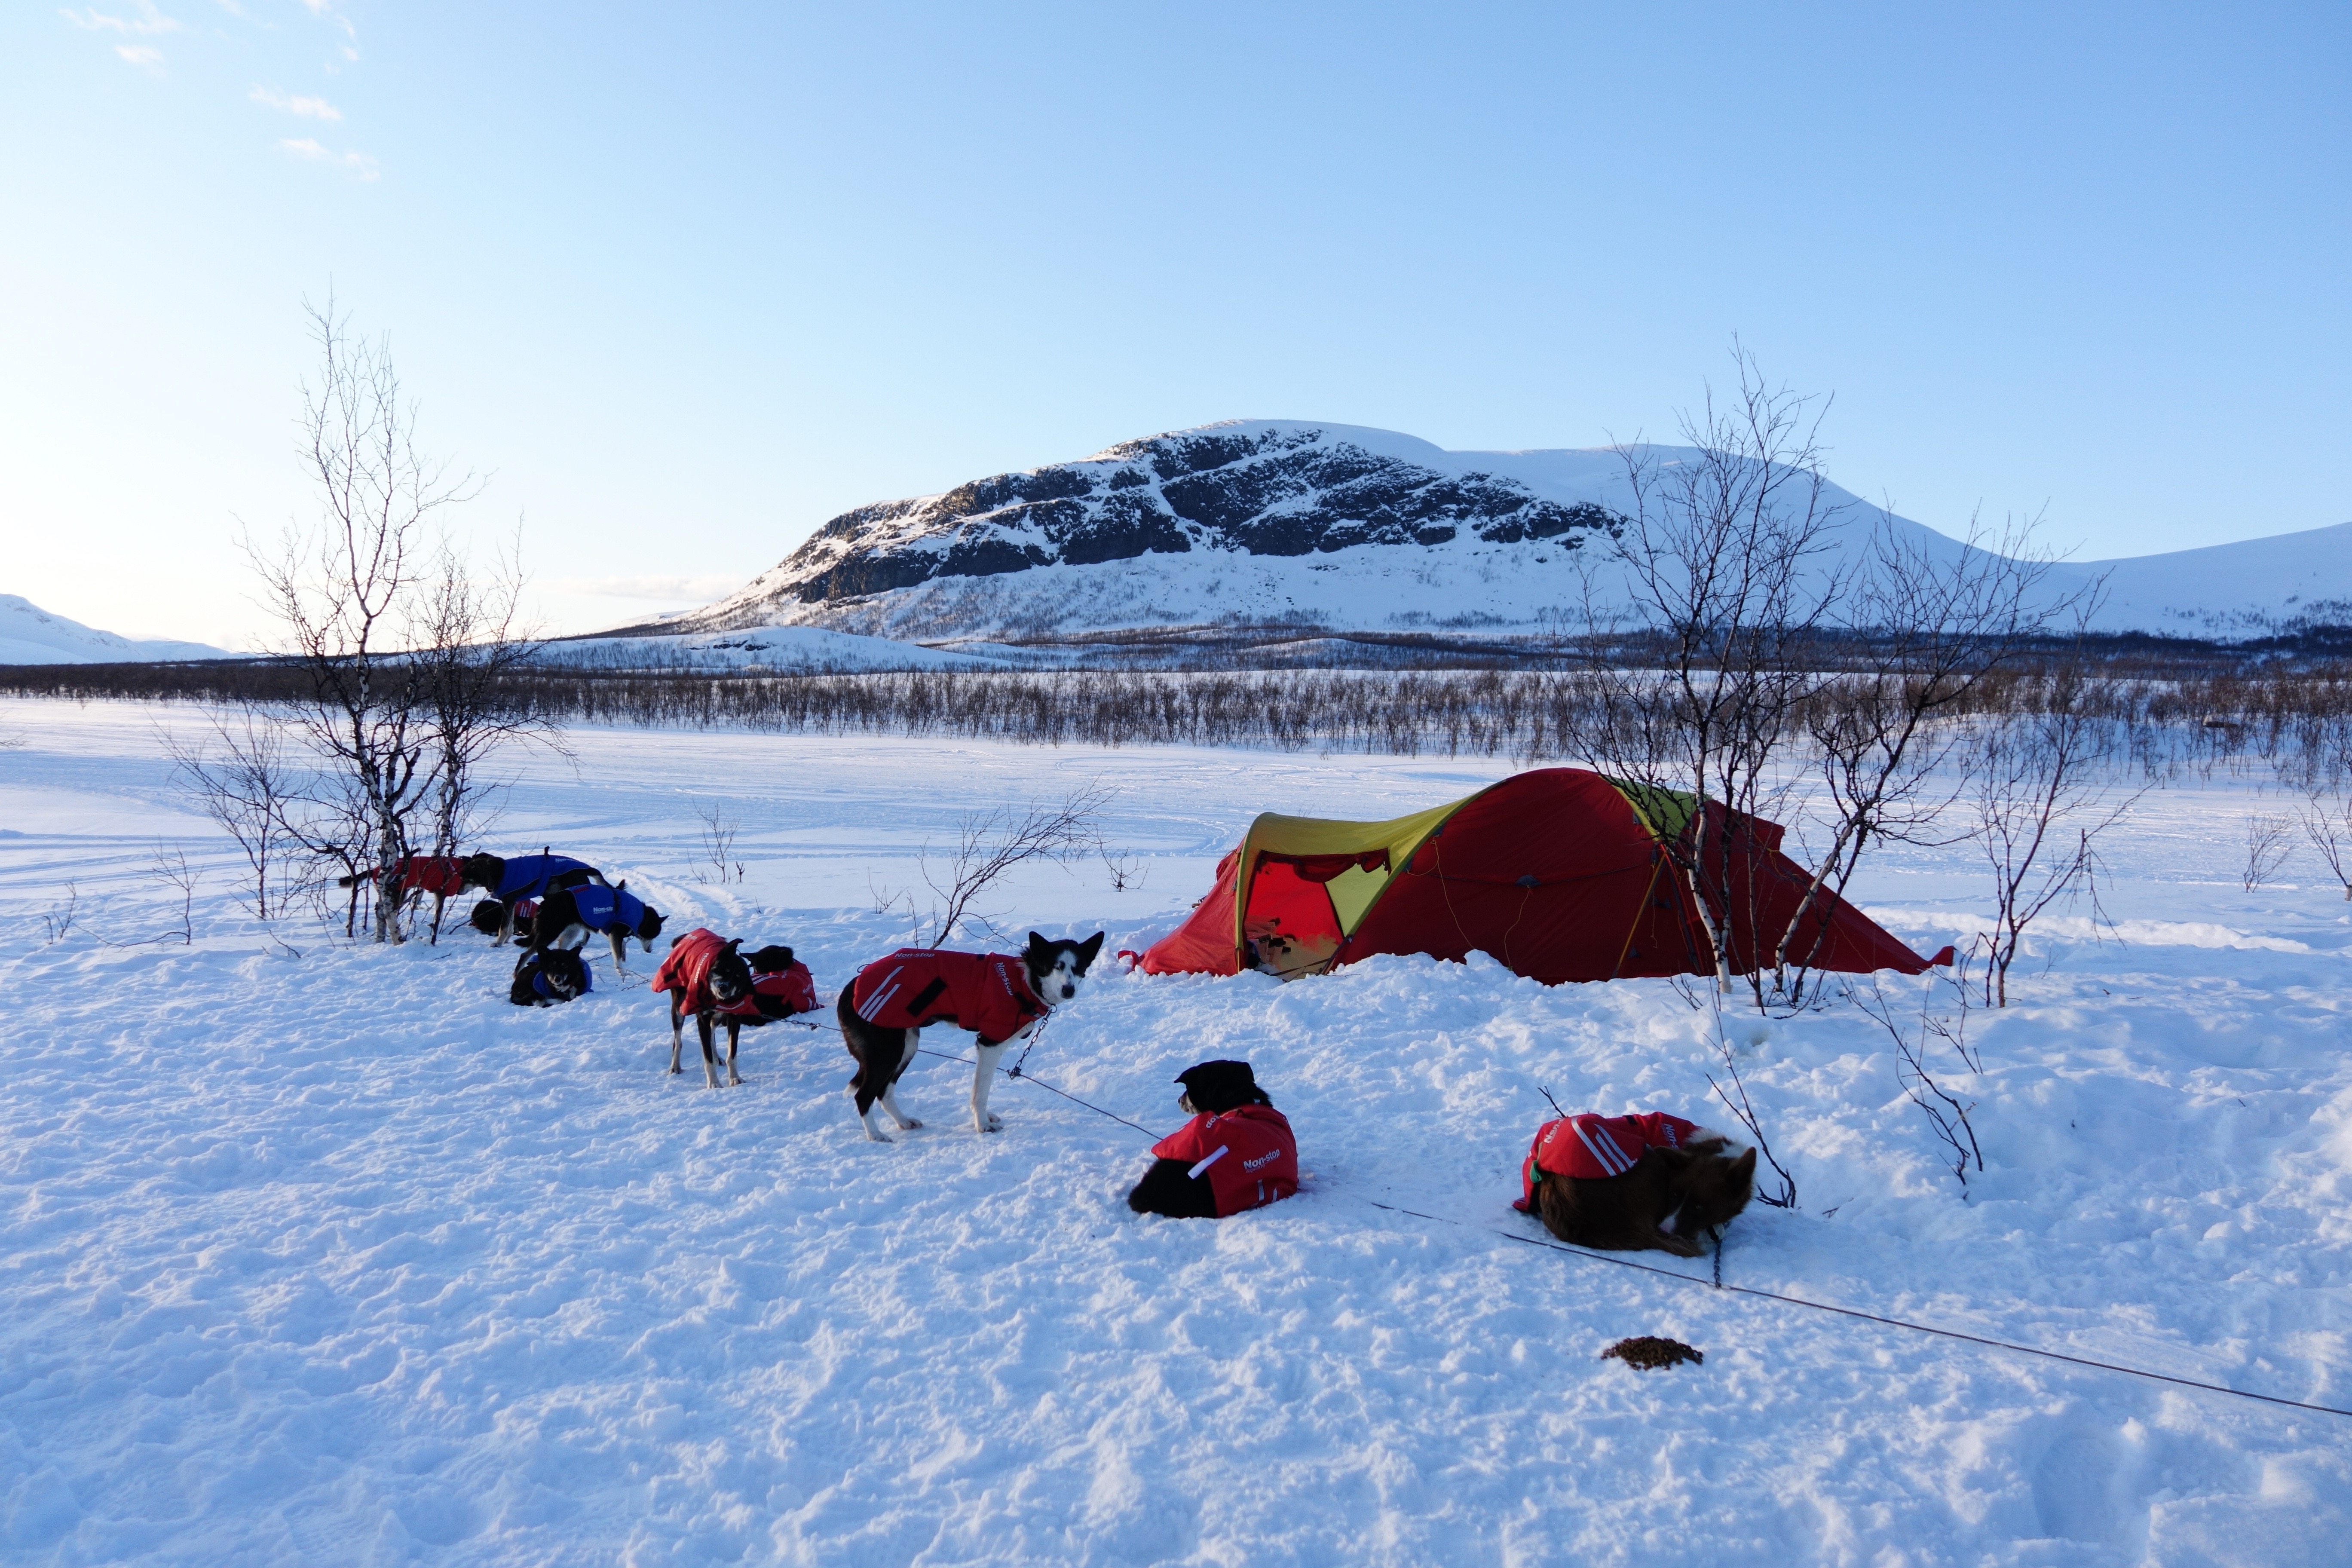 Rest is important for both dogs and the musher